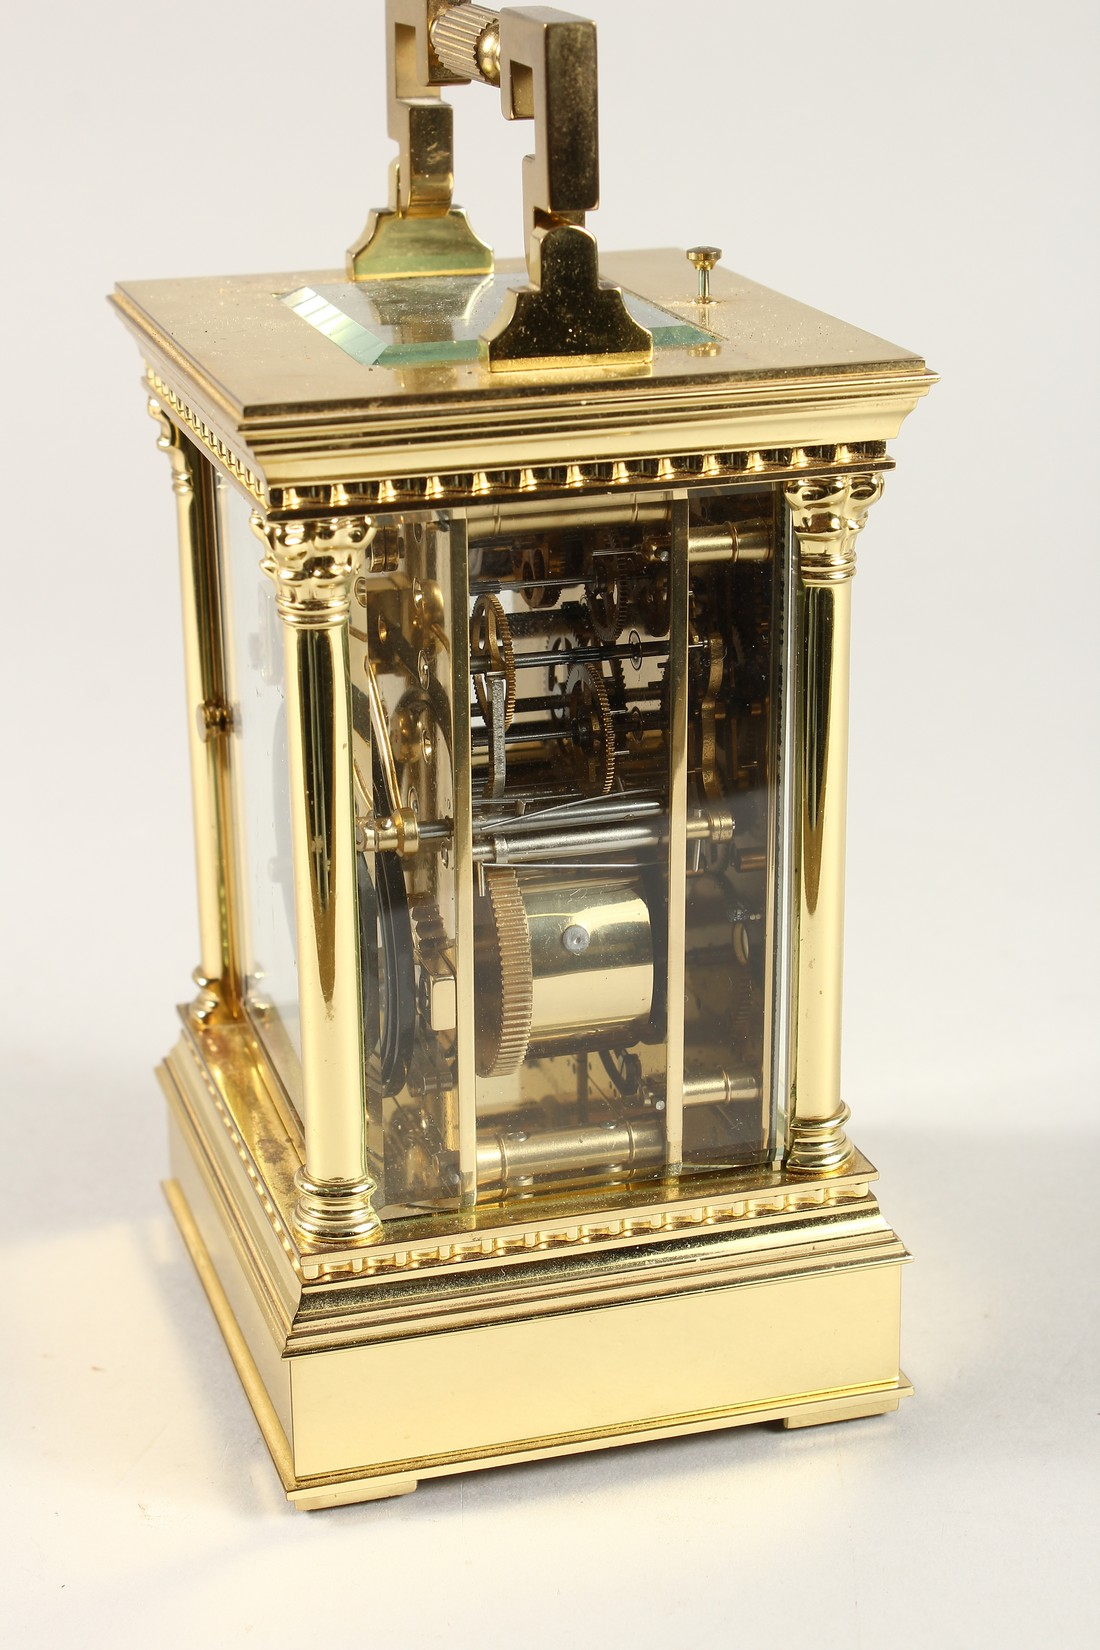 A GOOD ASPREYS BRASS CARRIAGE CLOCK with alarm. 6ins high. - Image 4 of 7